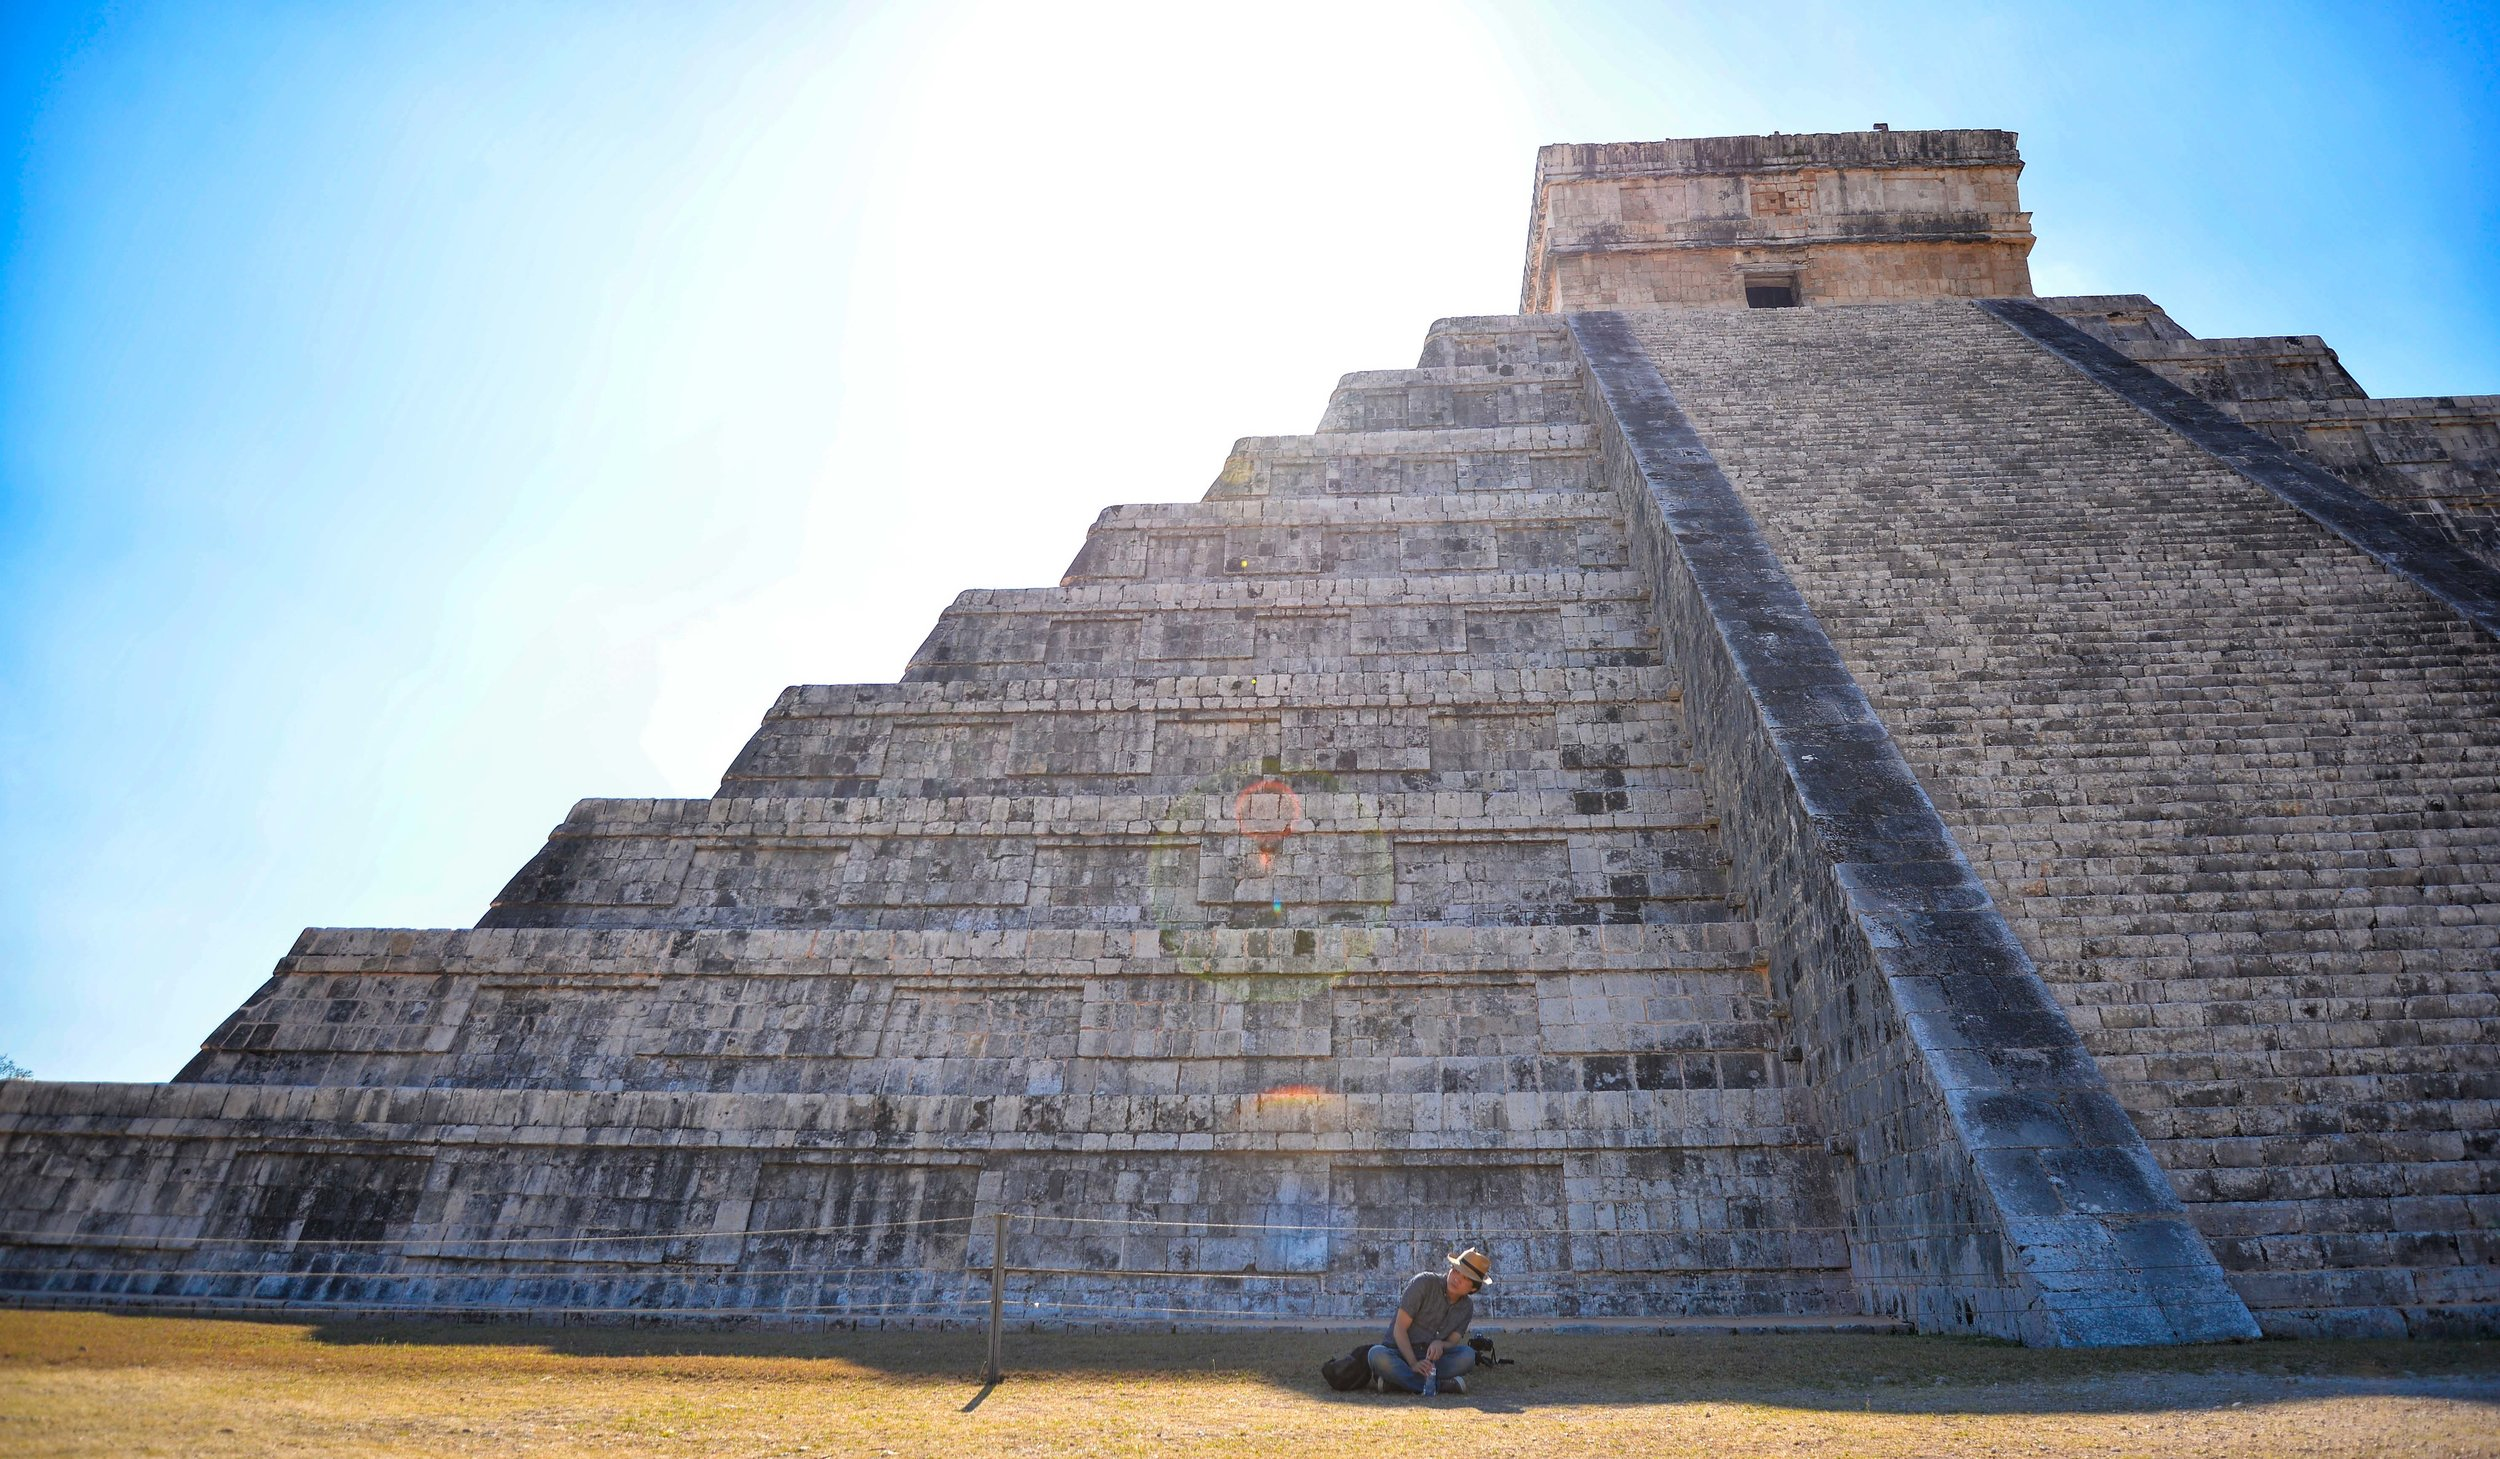 Explore the Mayan Ruins in a Guided Tour